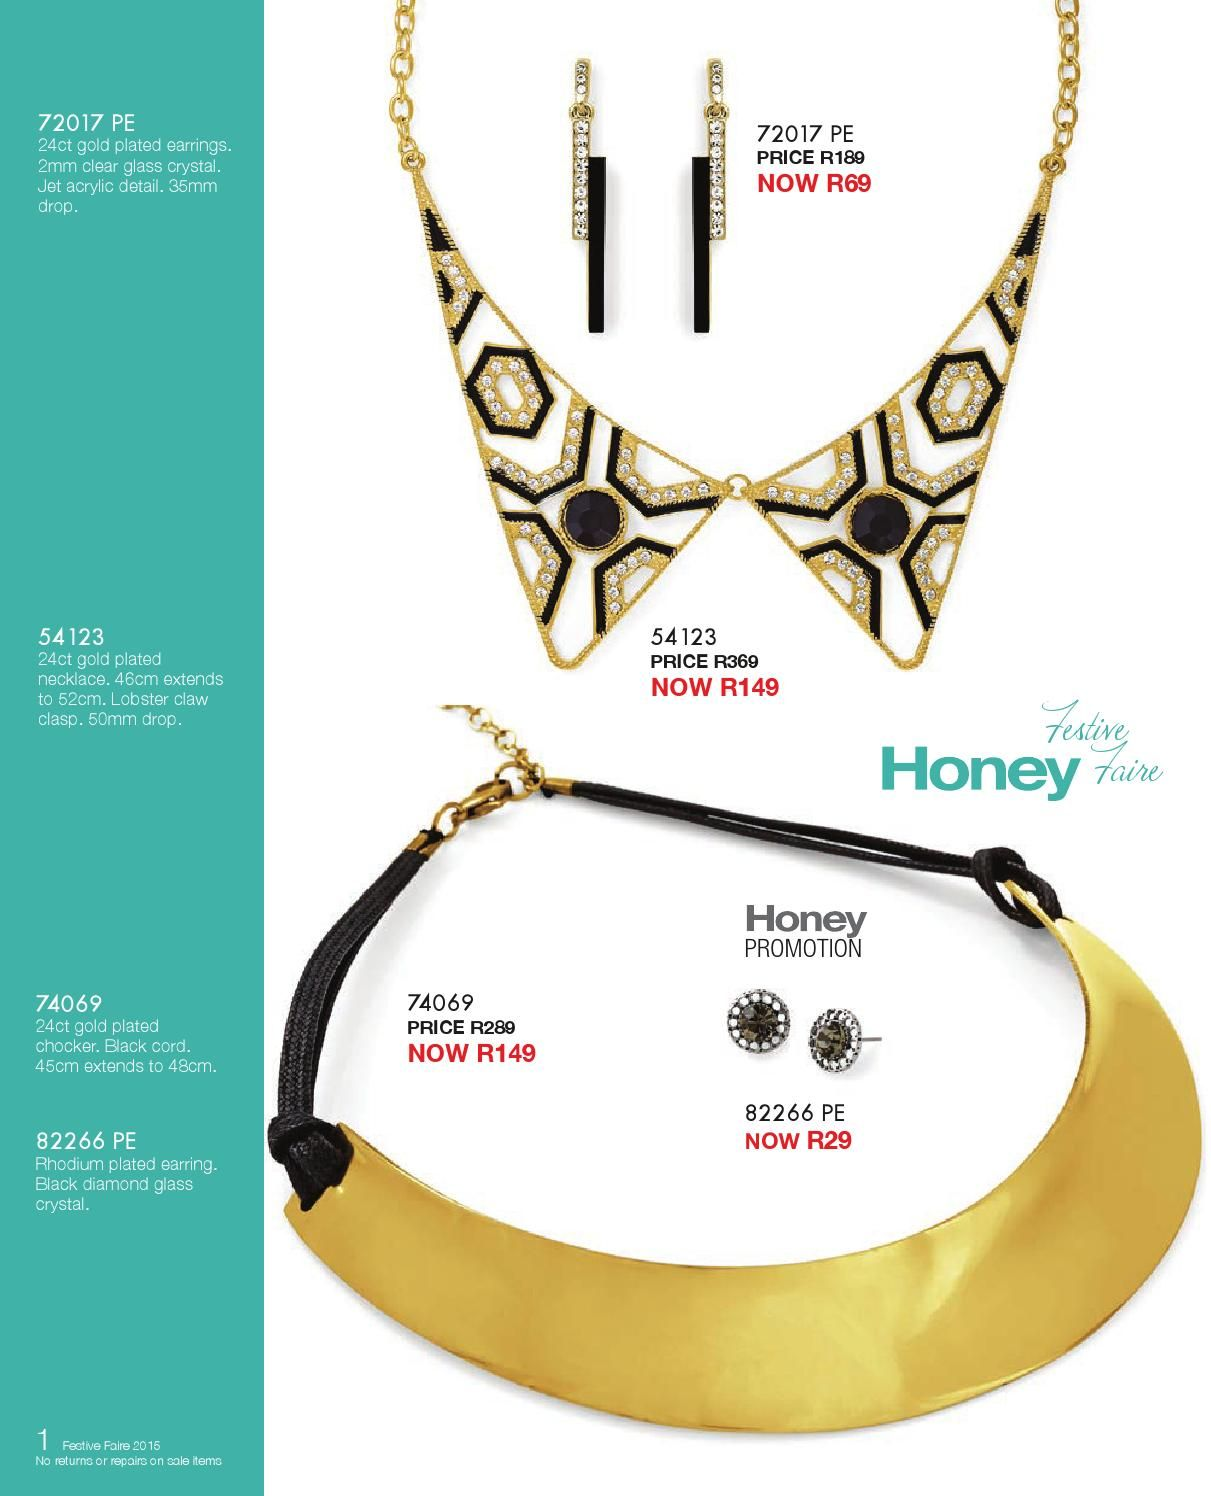 Oh ho ho, we couldn't help ourselves! So many gorgeous bejewelled and sparkly things we have that we'd like to see you bedecked  in all things Honey this festive season! So take a look and we're sure you'll find something  charming for yourself, no matter if you've been naughty or nice...